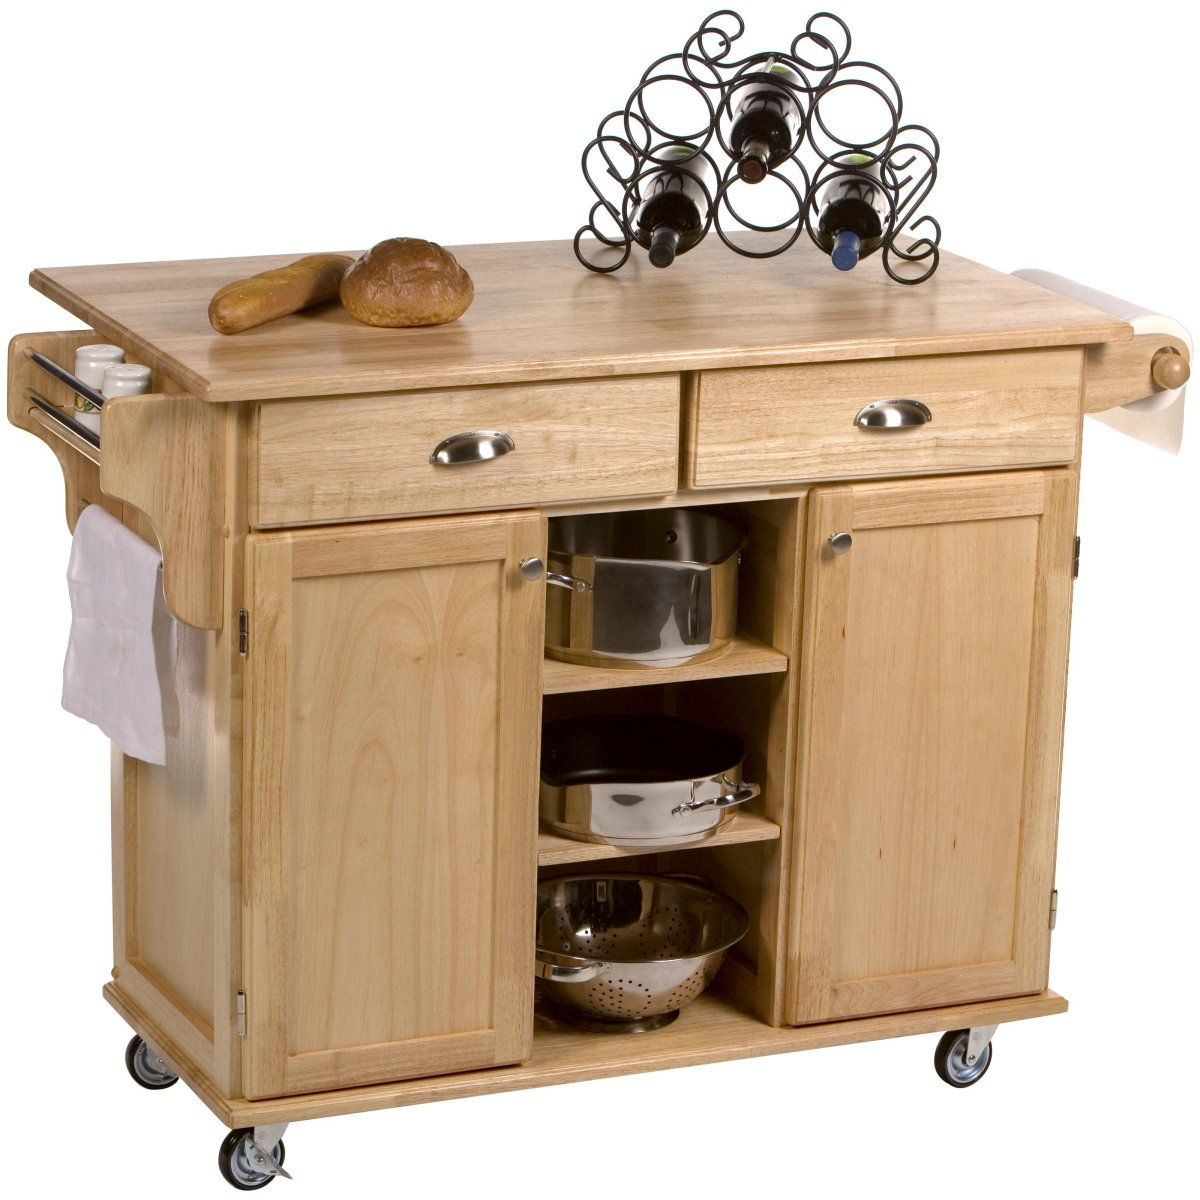 Napa Kitchen Cart - Kitchen Islands and Carts at eKitchen Islands ...